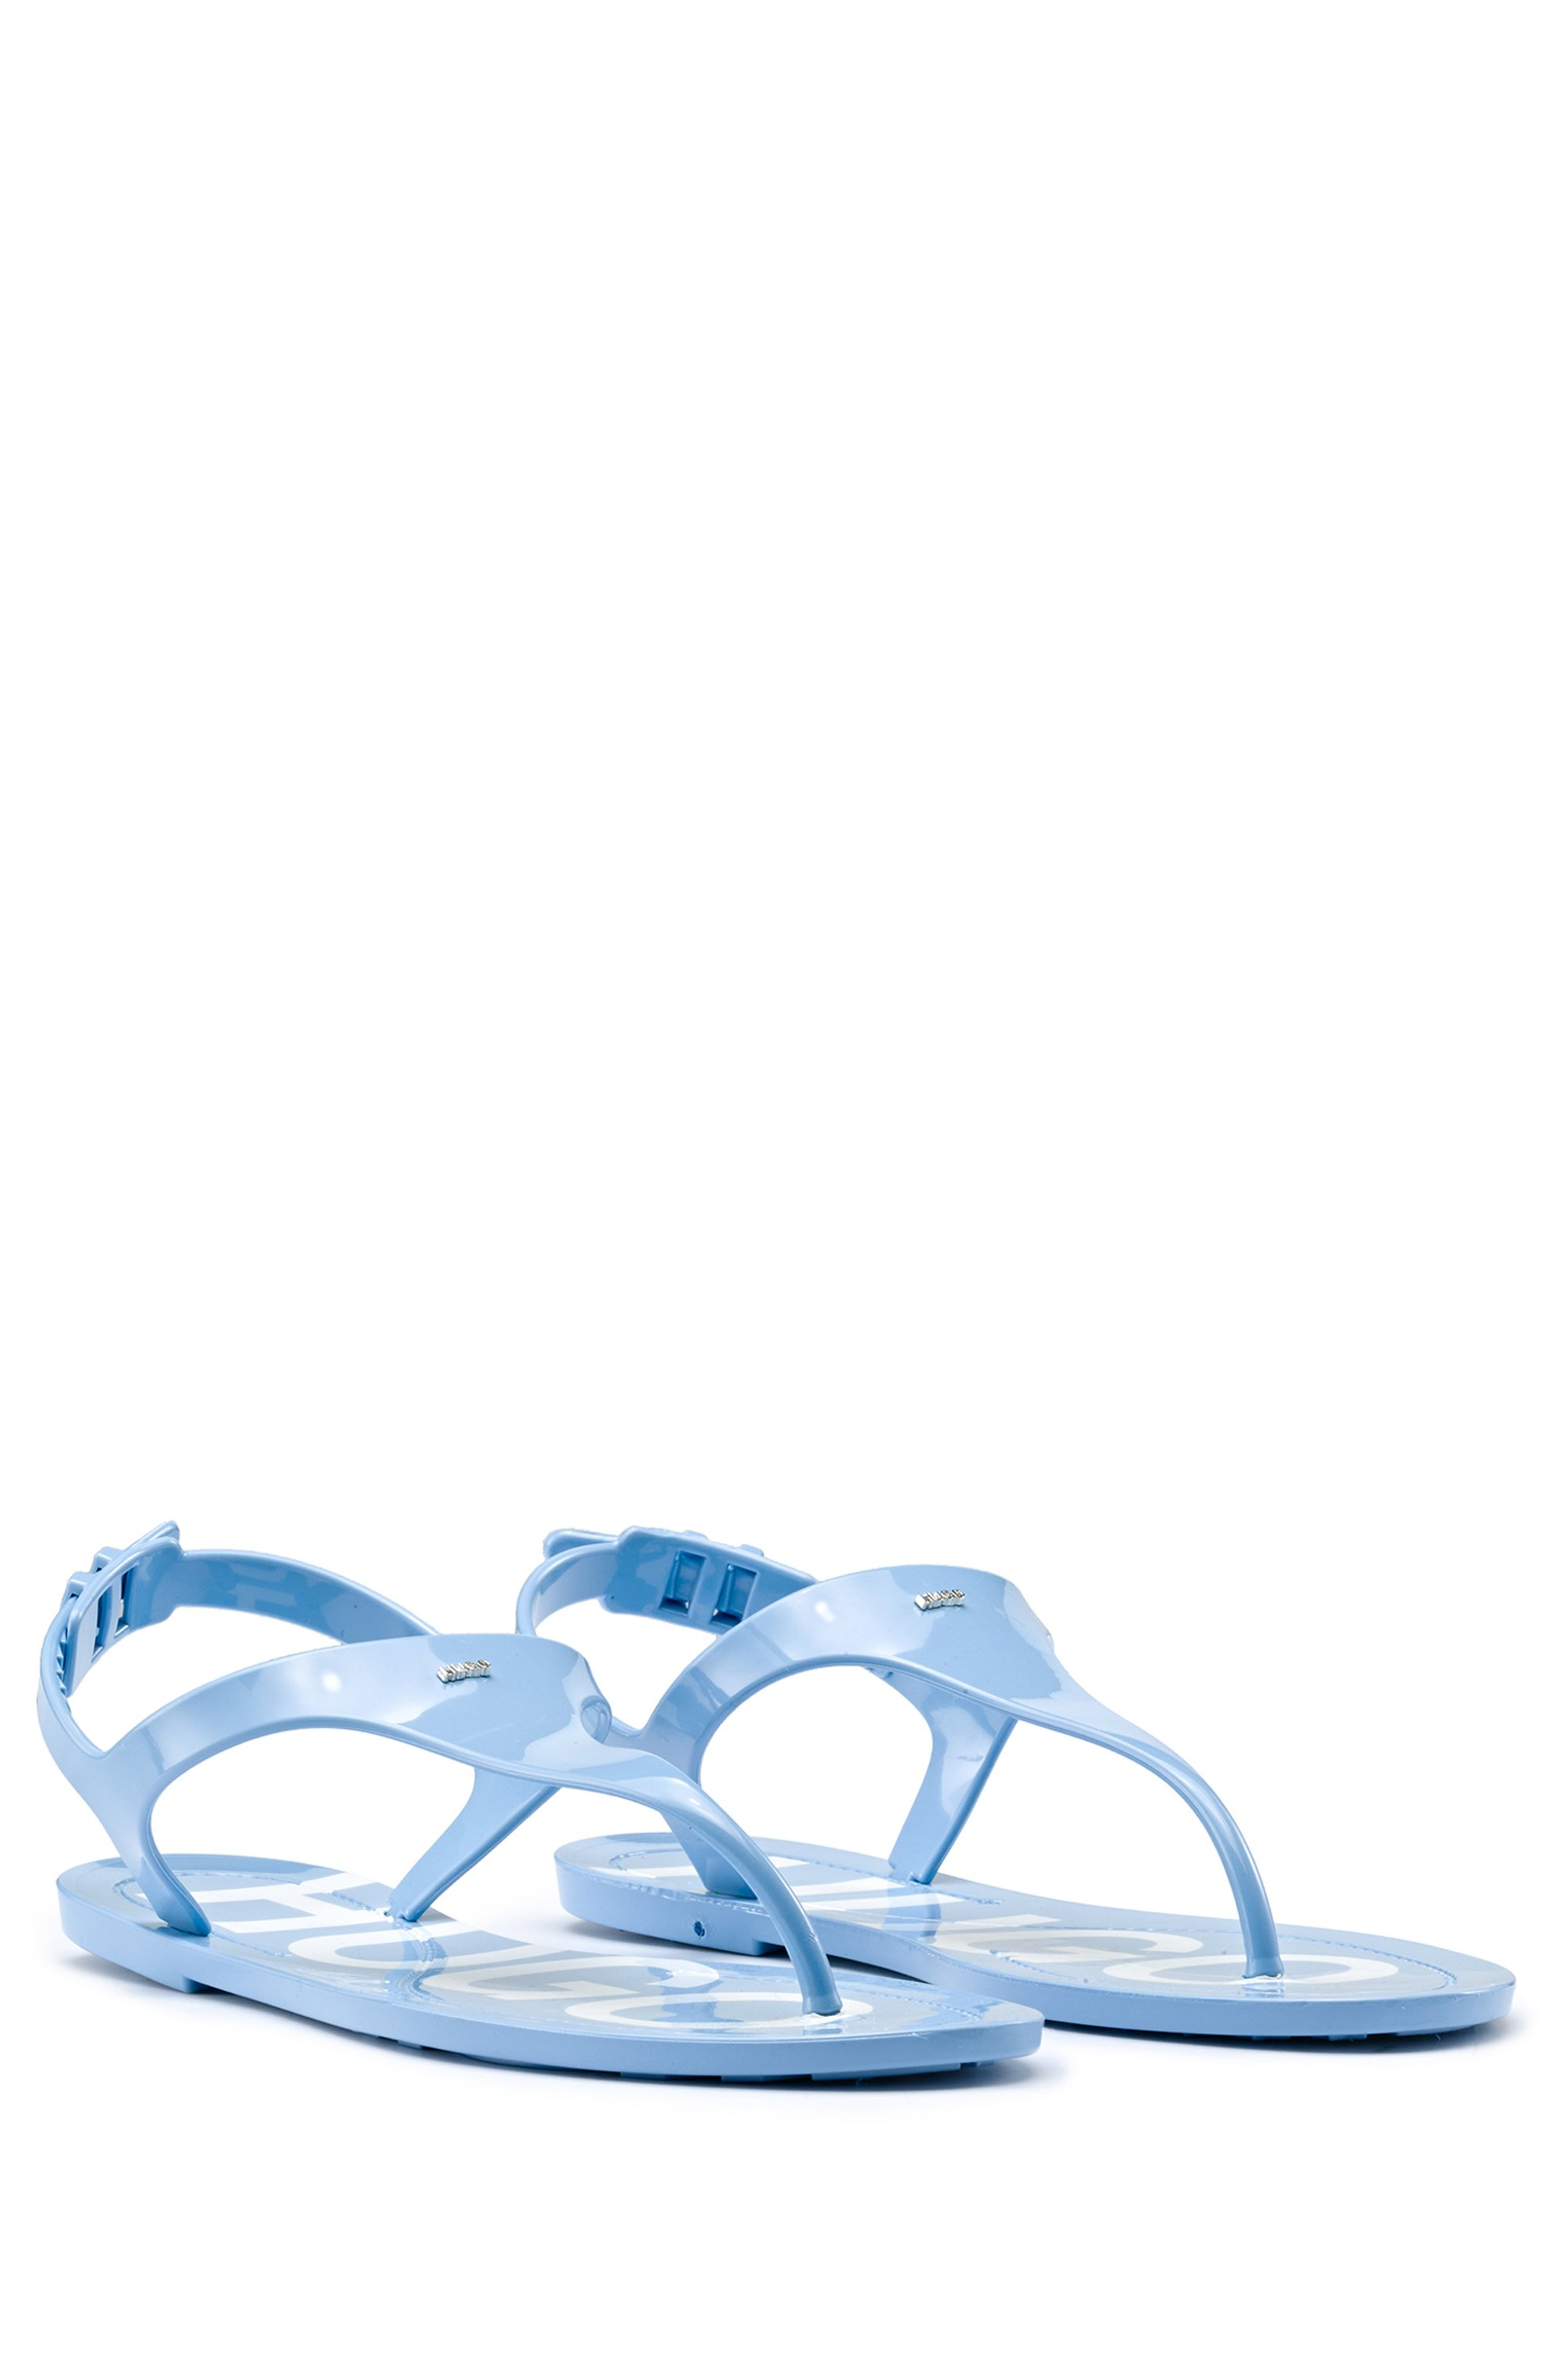 High-gloss thong sandals with logo footbed